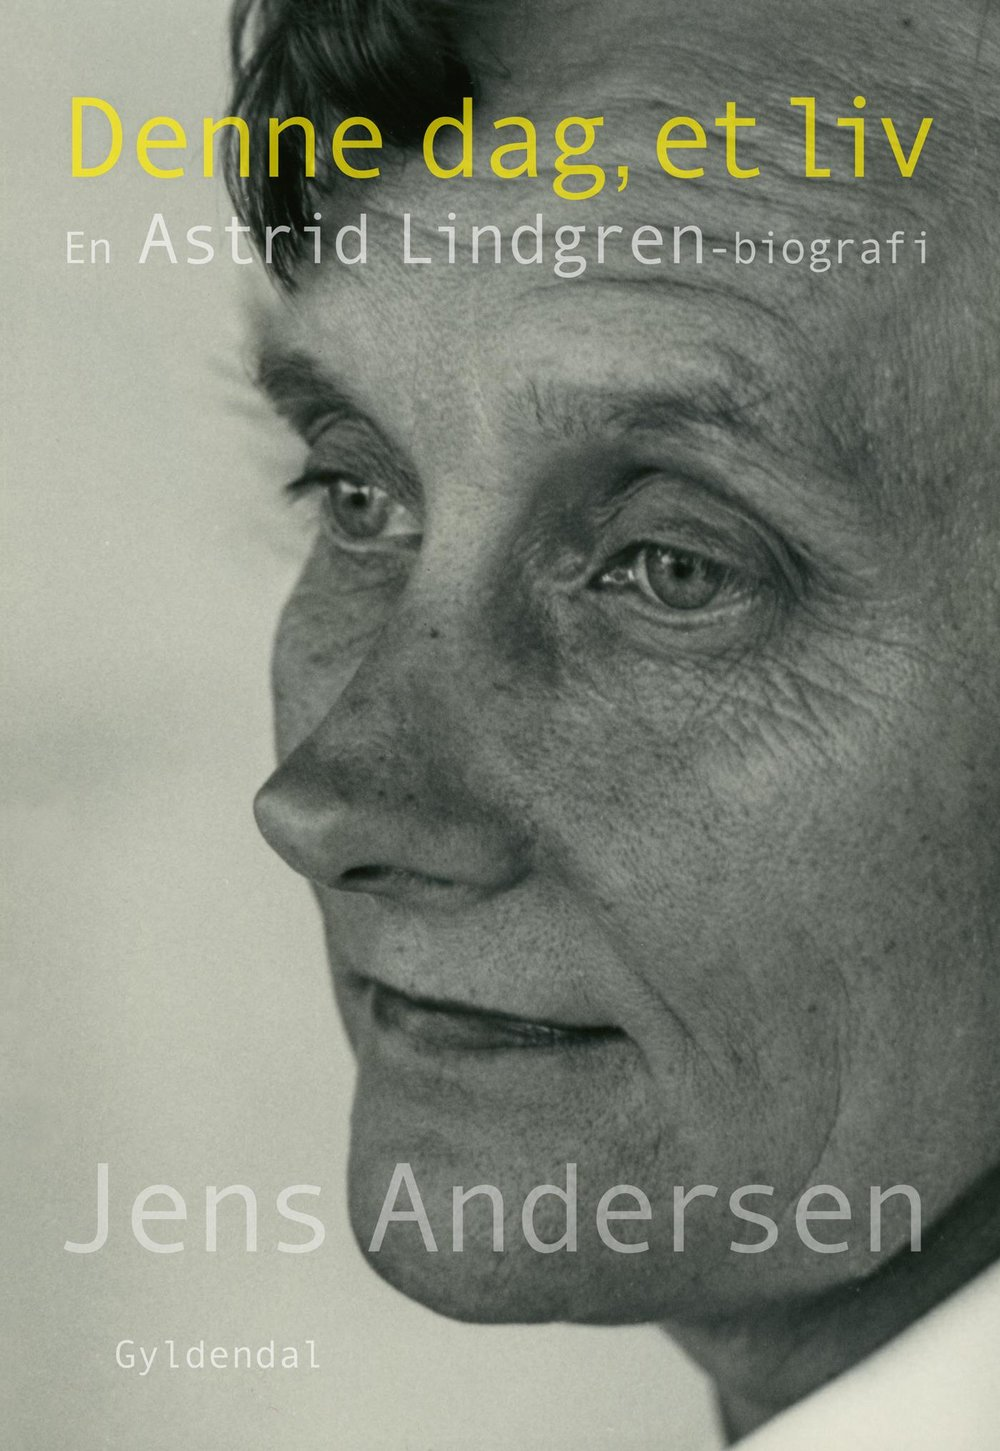 ASTRID LINDGREN BIOGRAPHY